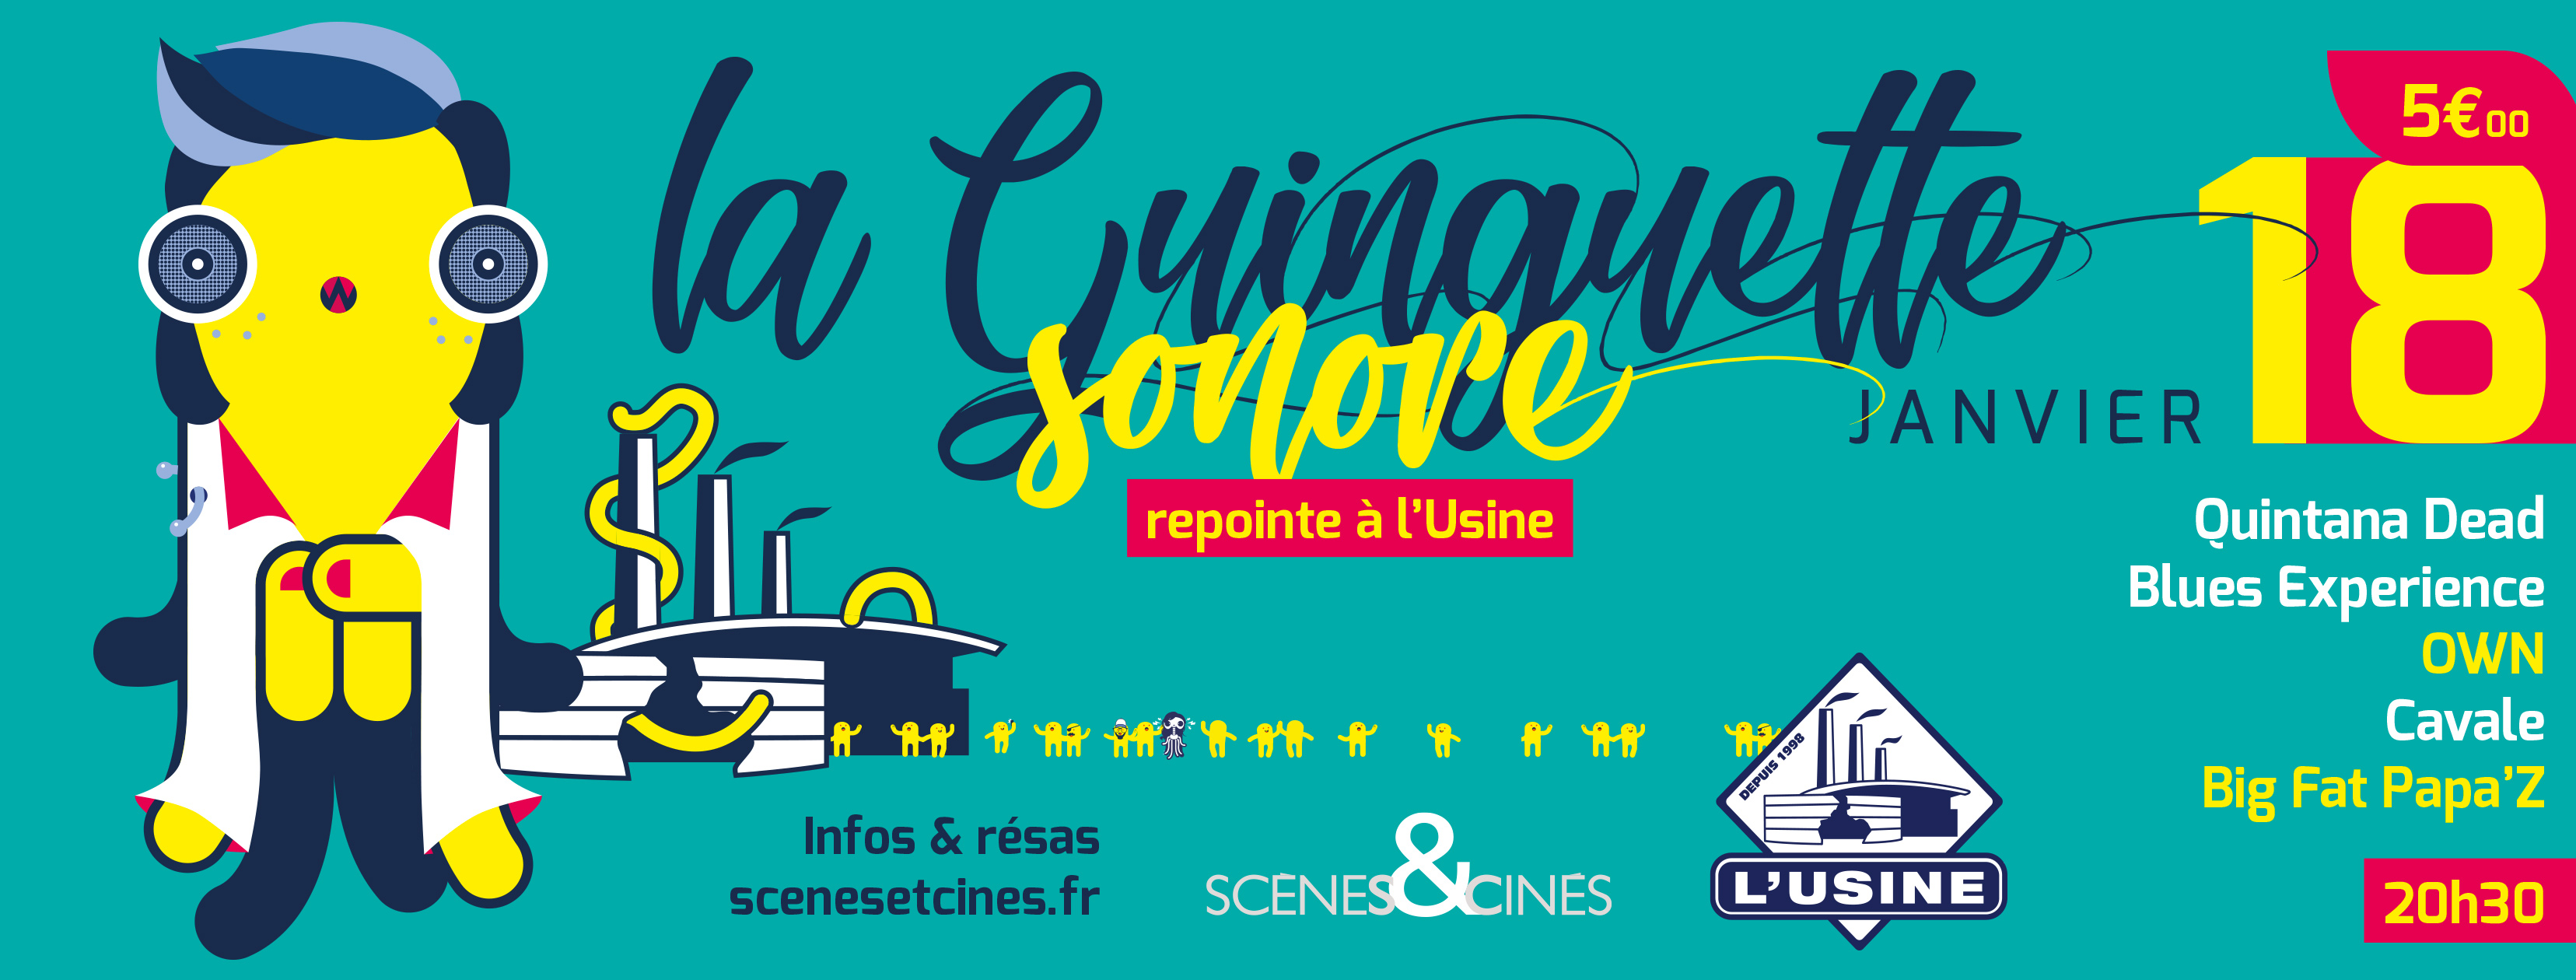 https://the-place-to-be.fr/wp-content/uploads/2019/12/guinguette-sonore-istres-janvier-2020.jpg